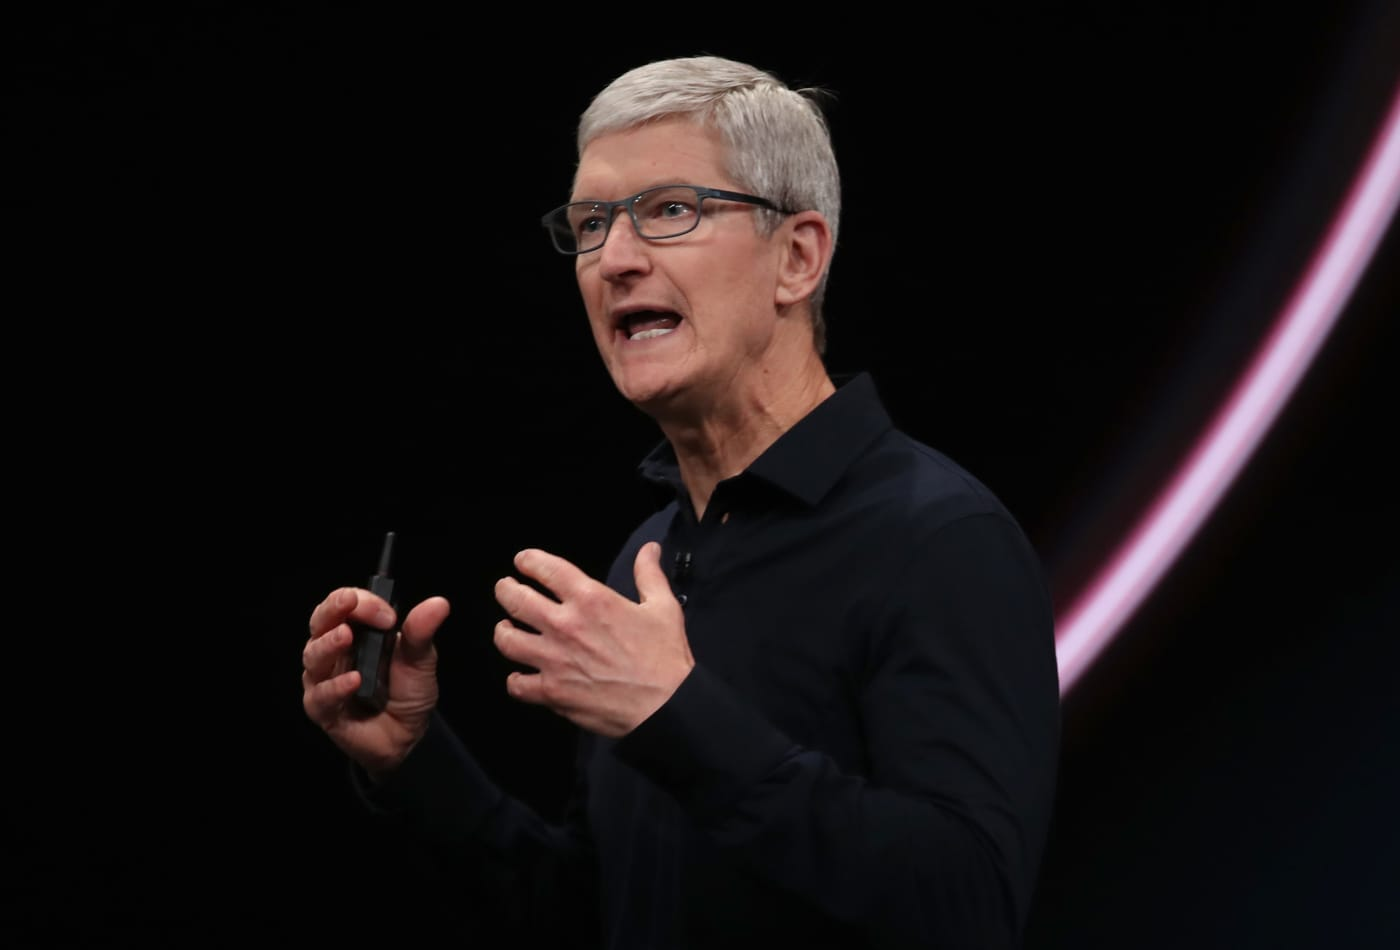 Read Apple CEO Tim Cook's open letter on racism: 'We must do more'